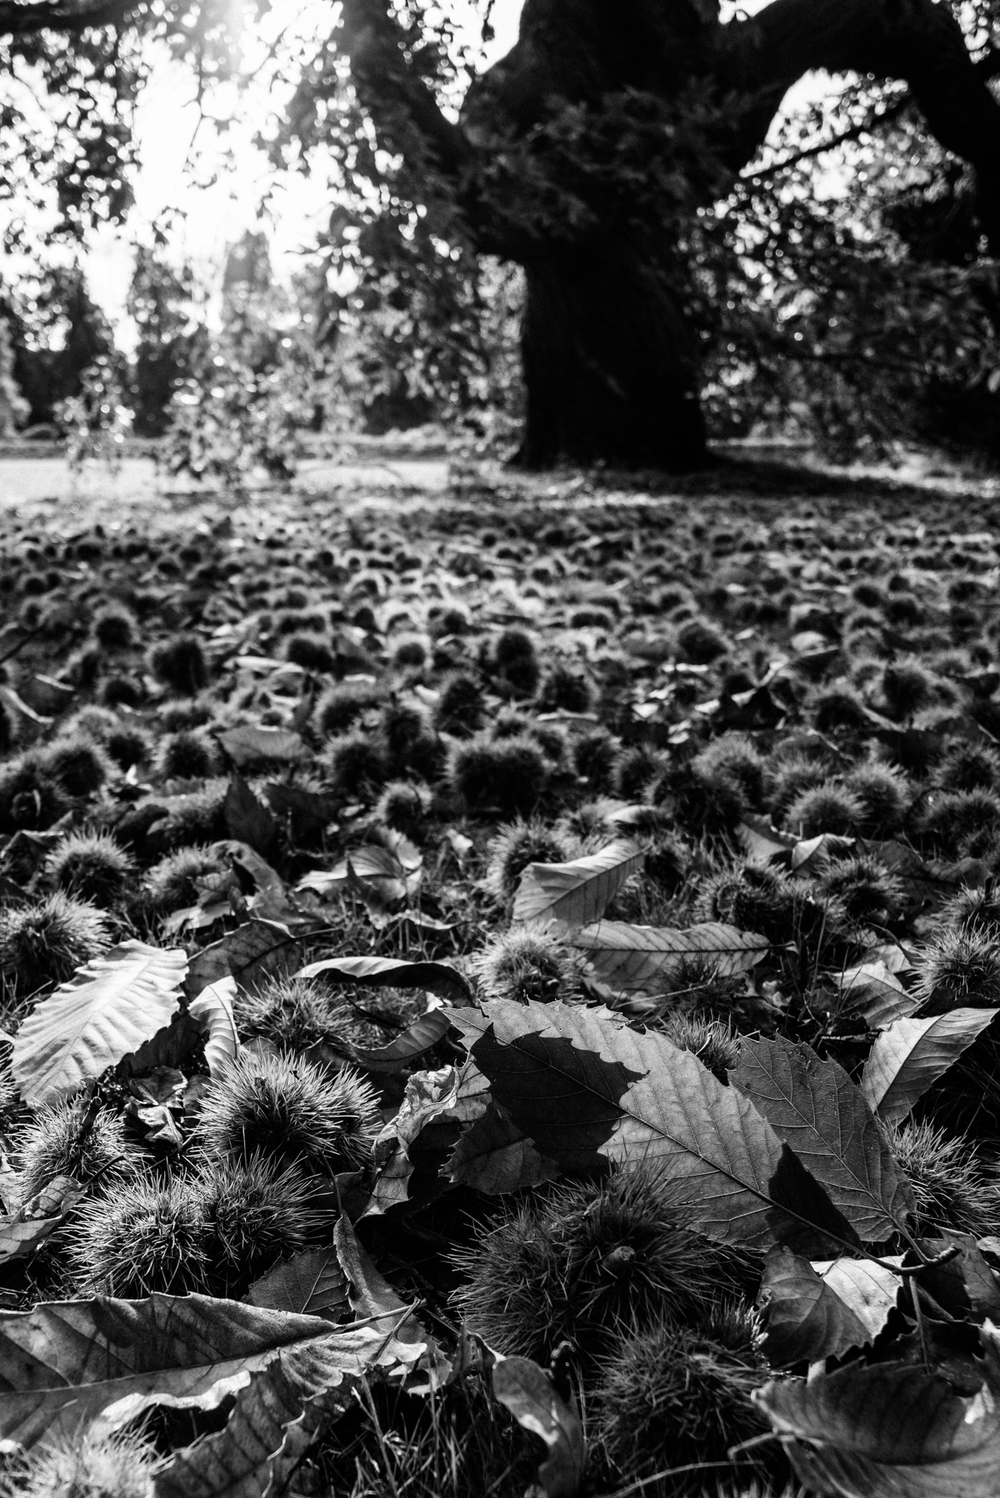 Conkers | A'R & Voigtländer 20mm f3.5 | 1/500s f/6.3 ISO500 20mm